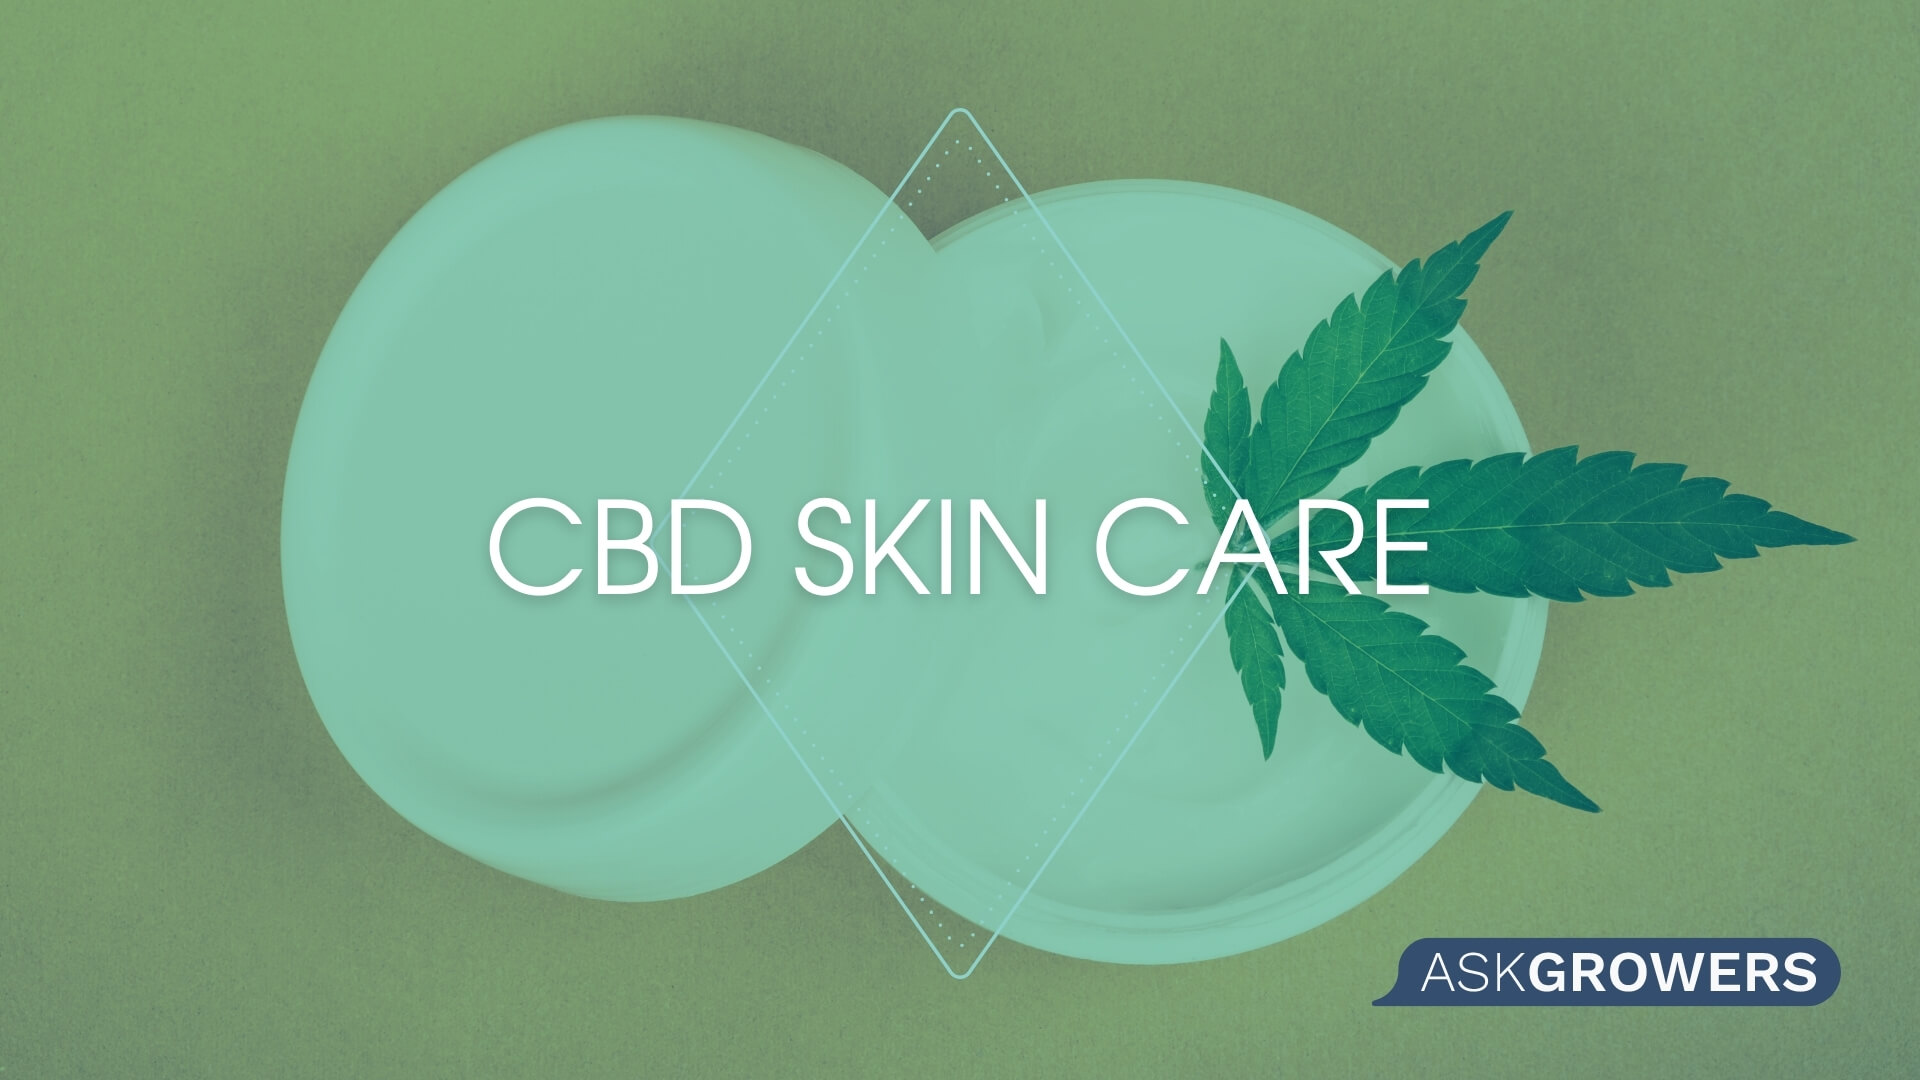 CBD Skin Care: Benefits of CBD for the Skin, AskGrowers